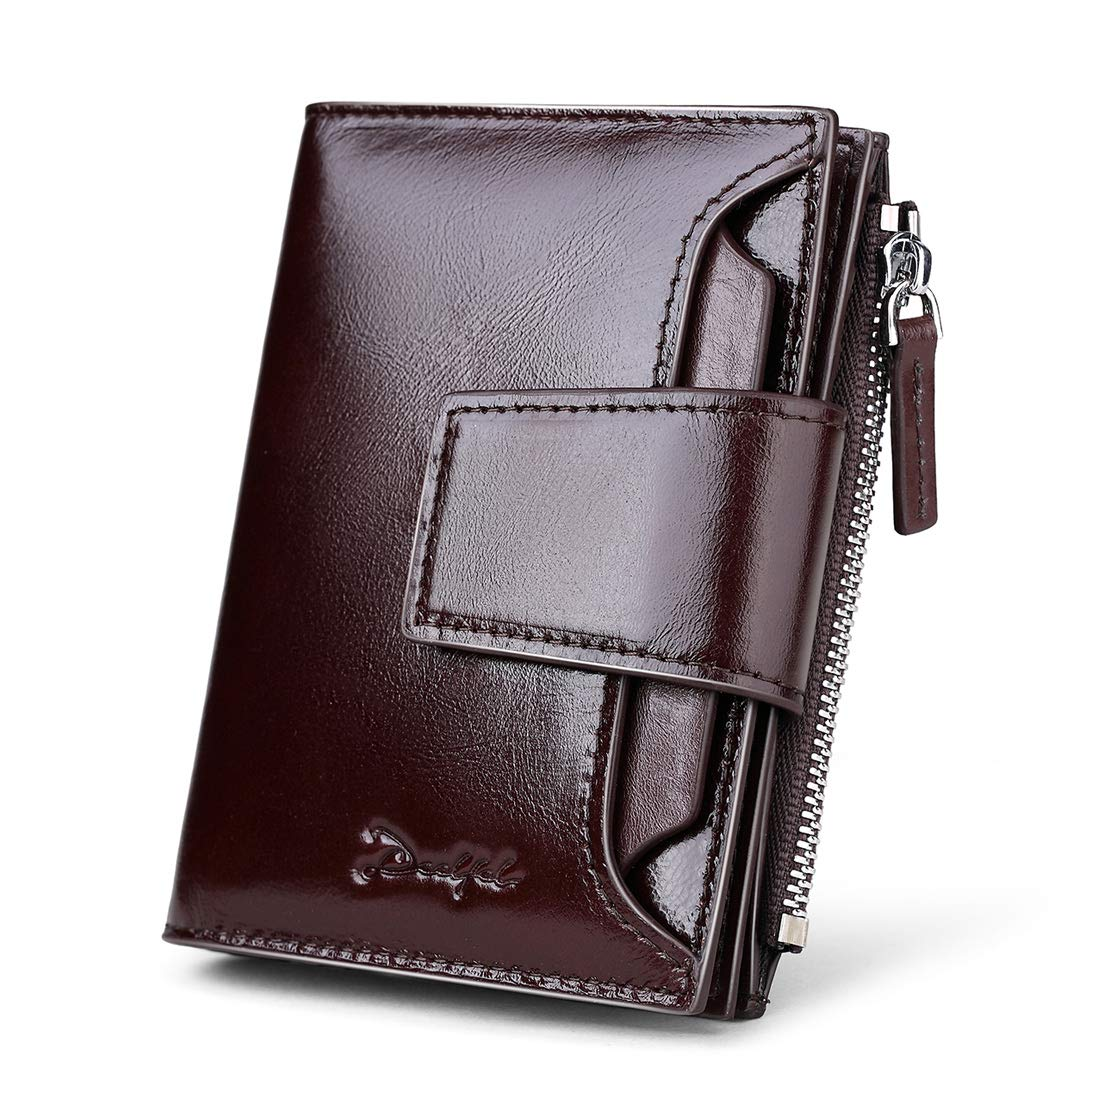 DEELFEL Men & Women RFID Blocking Wallet Small Vintage Crazy Horse Leather Short Purse Bifold black